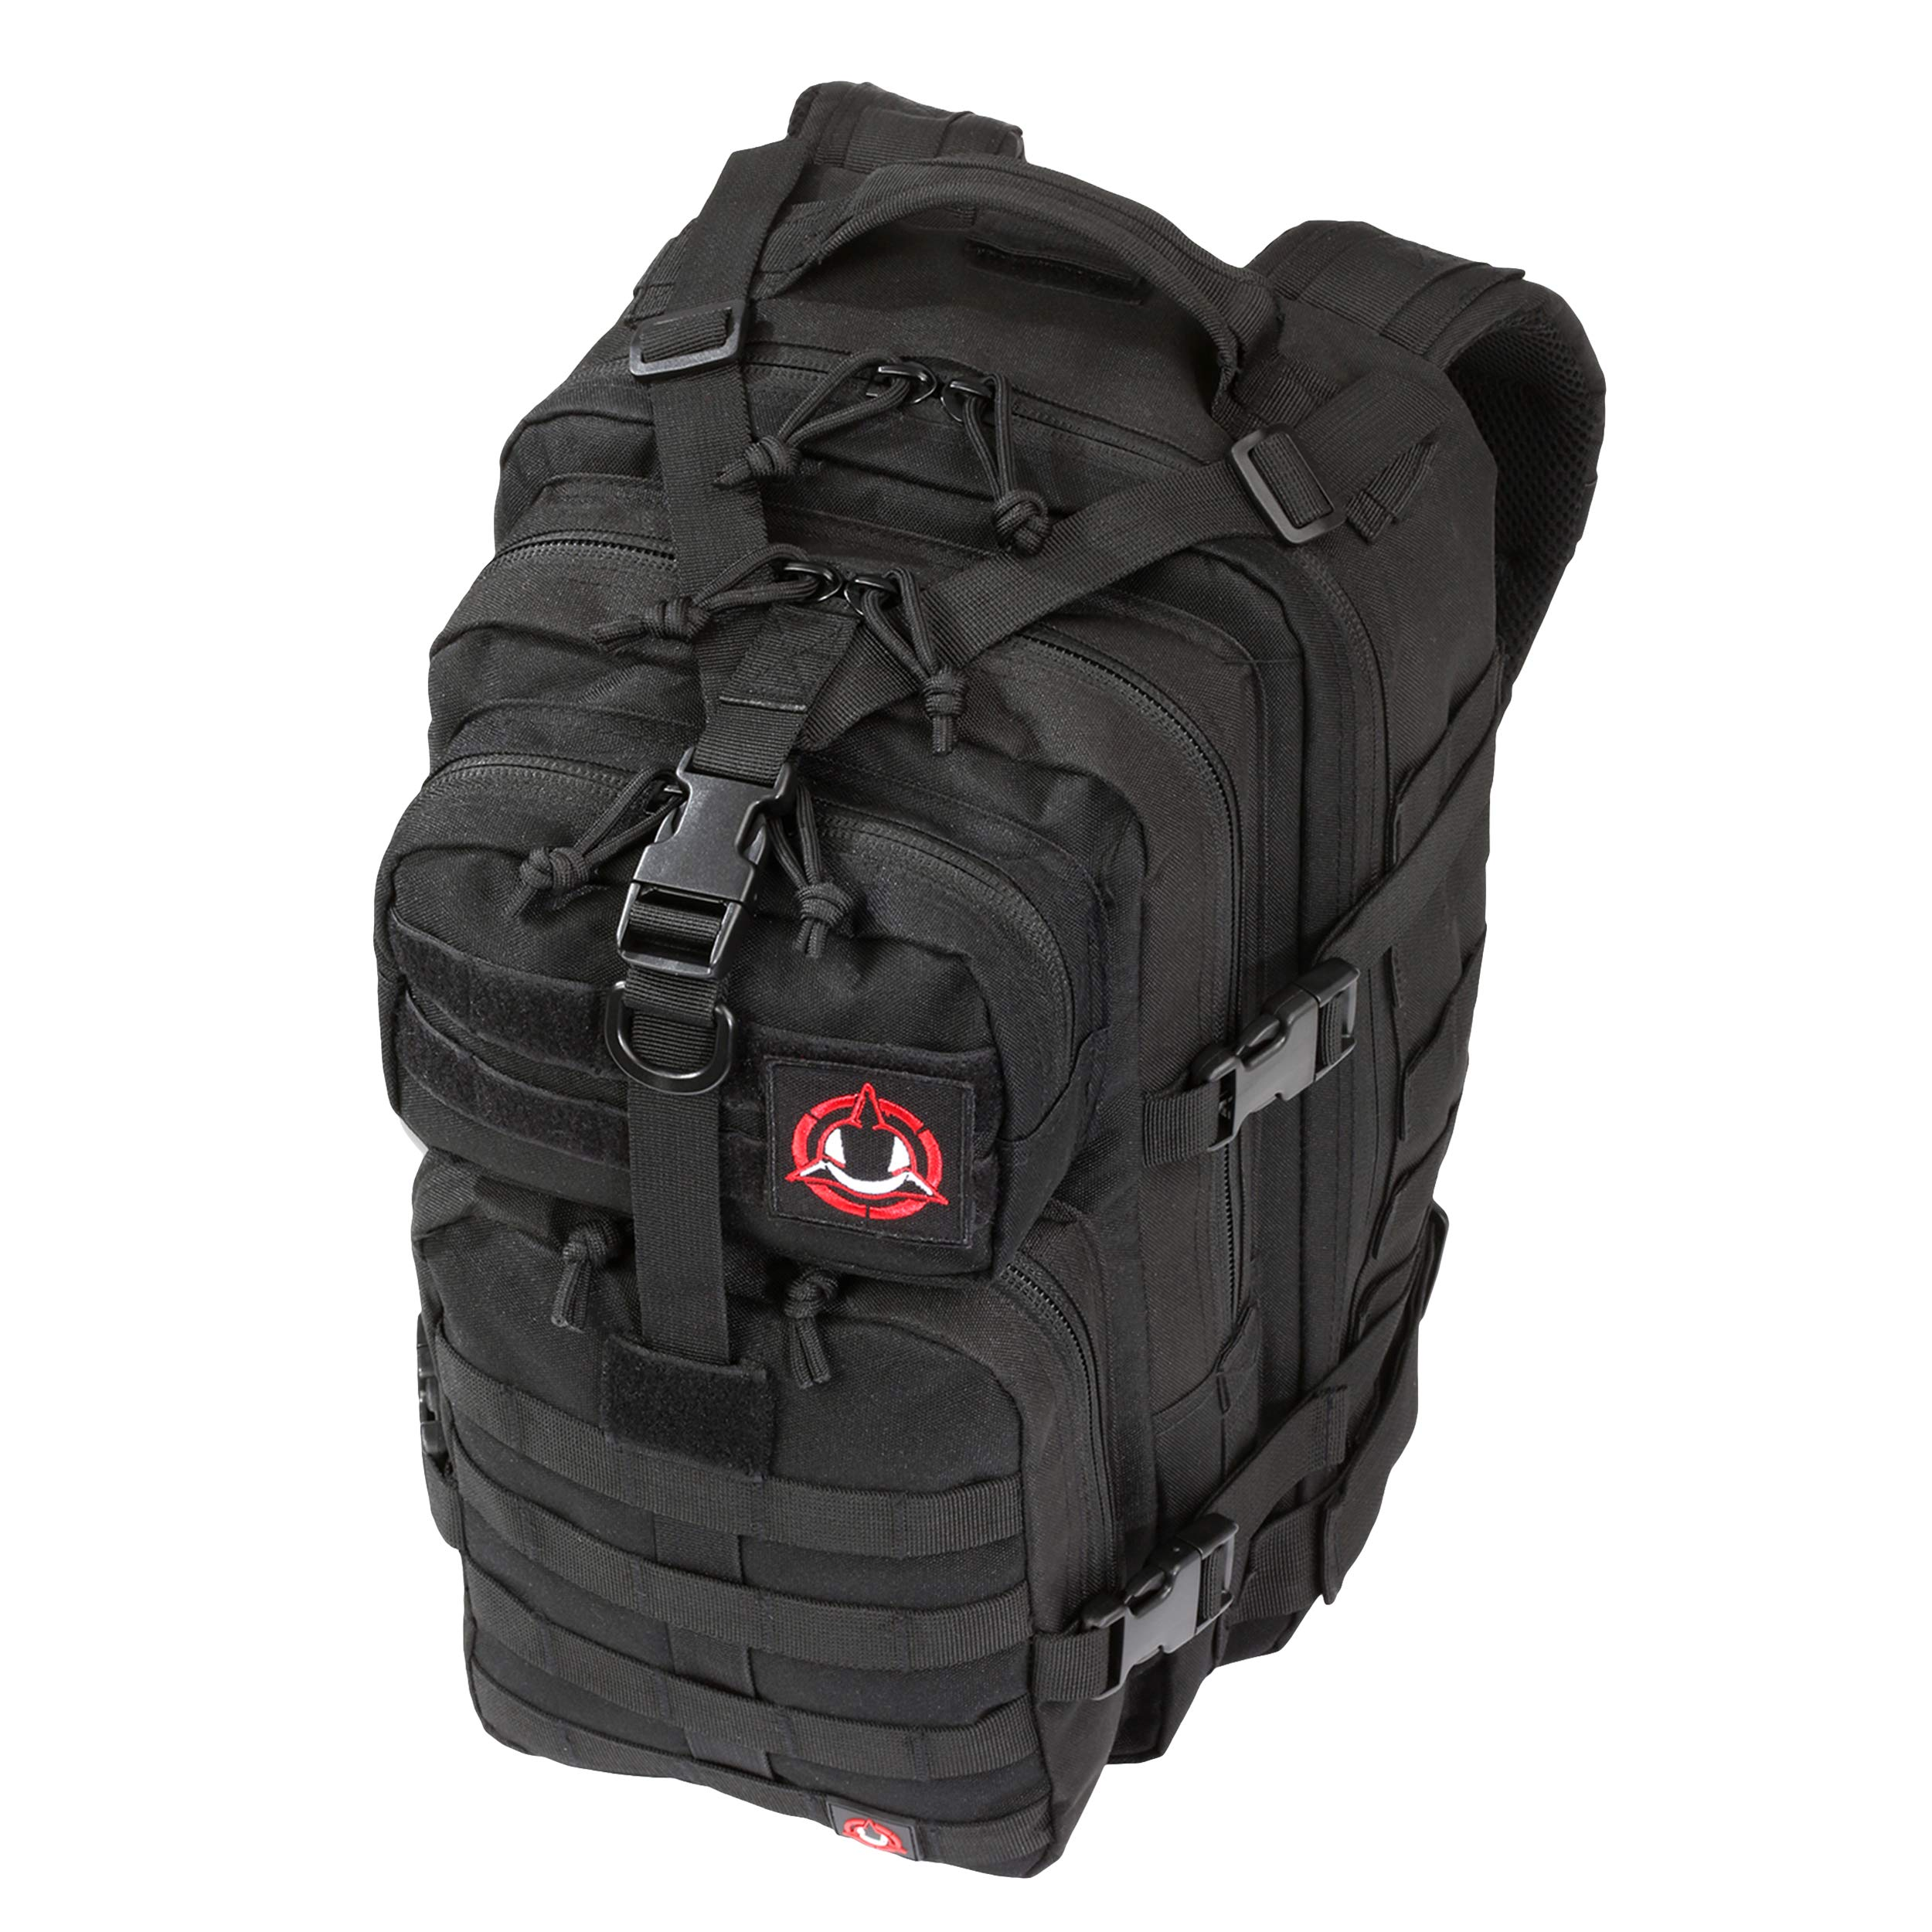 Best Rated in Tactical Backpacks & Helpful Customer Reviews